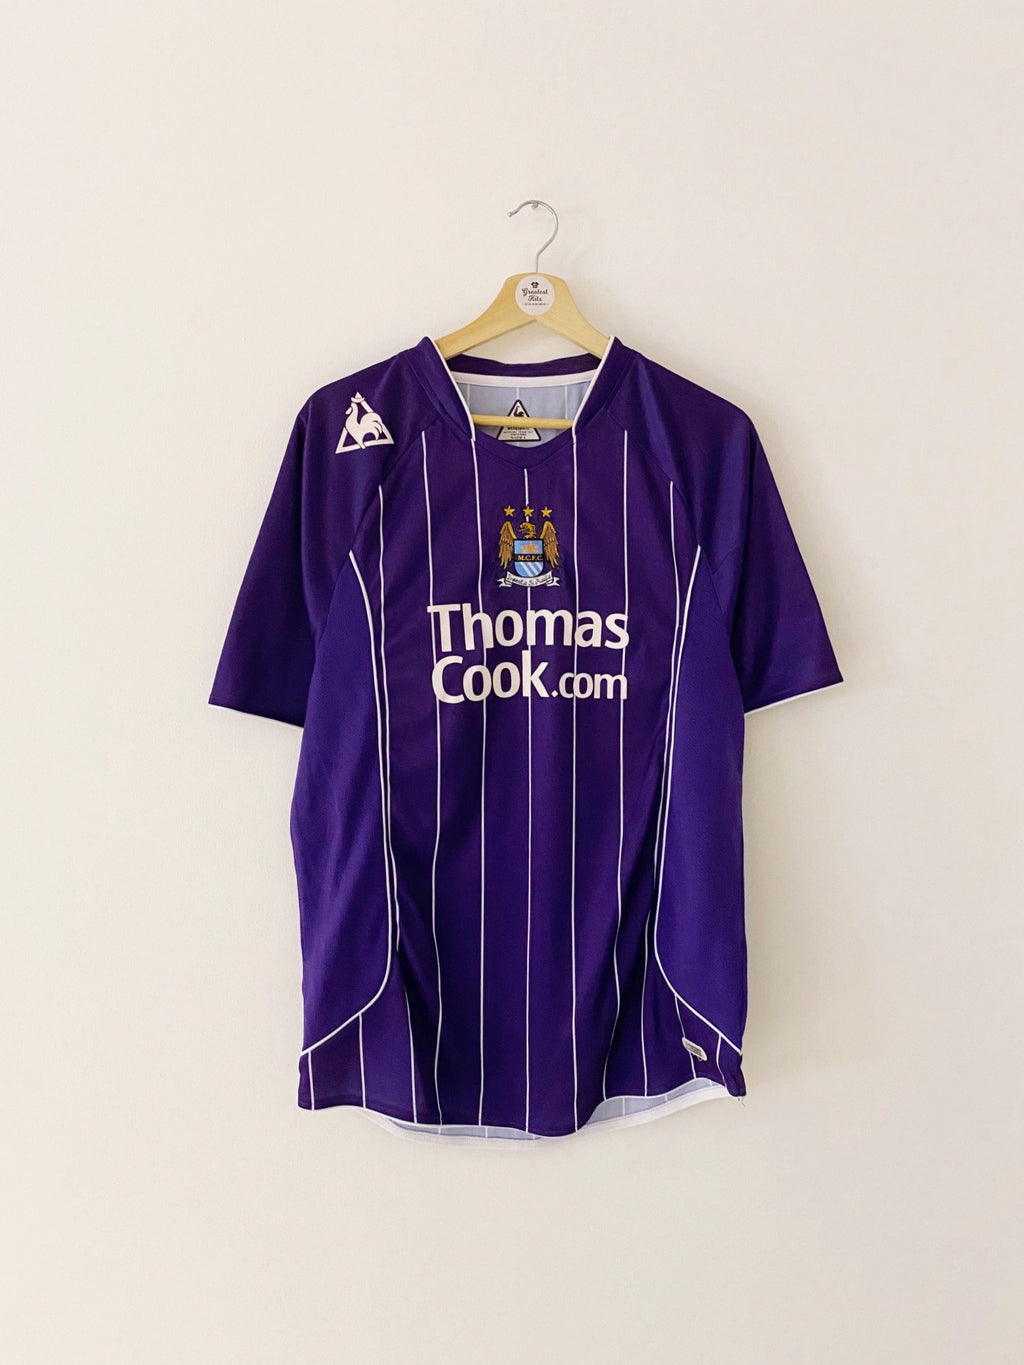 2007/08 Manchester City Away Shirt (L) 9/10